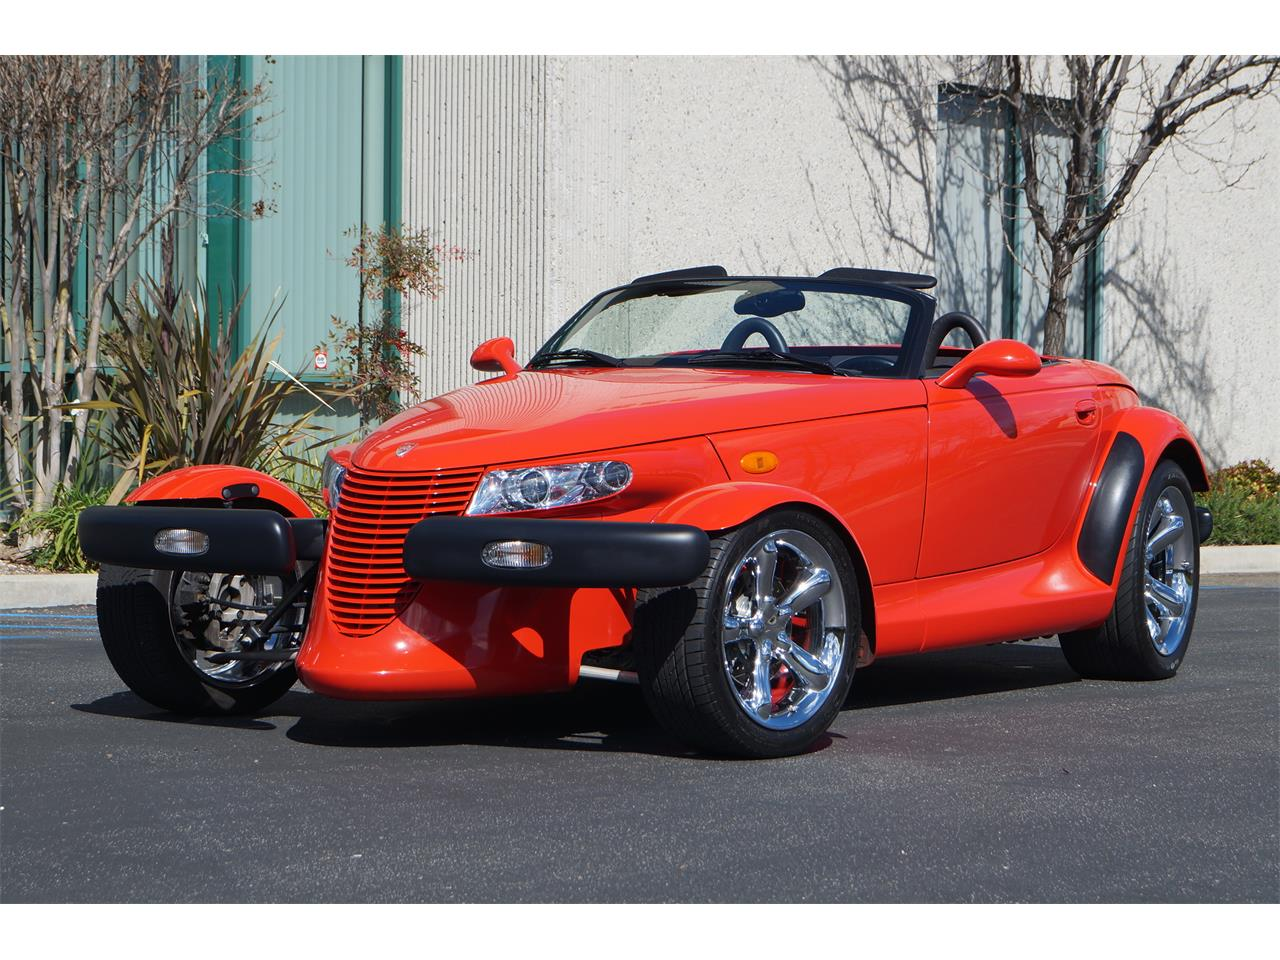 2000 Plymouth Prowler for sale in Thousand Oaks, CA – photo 3